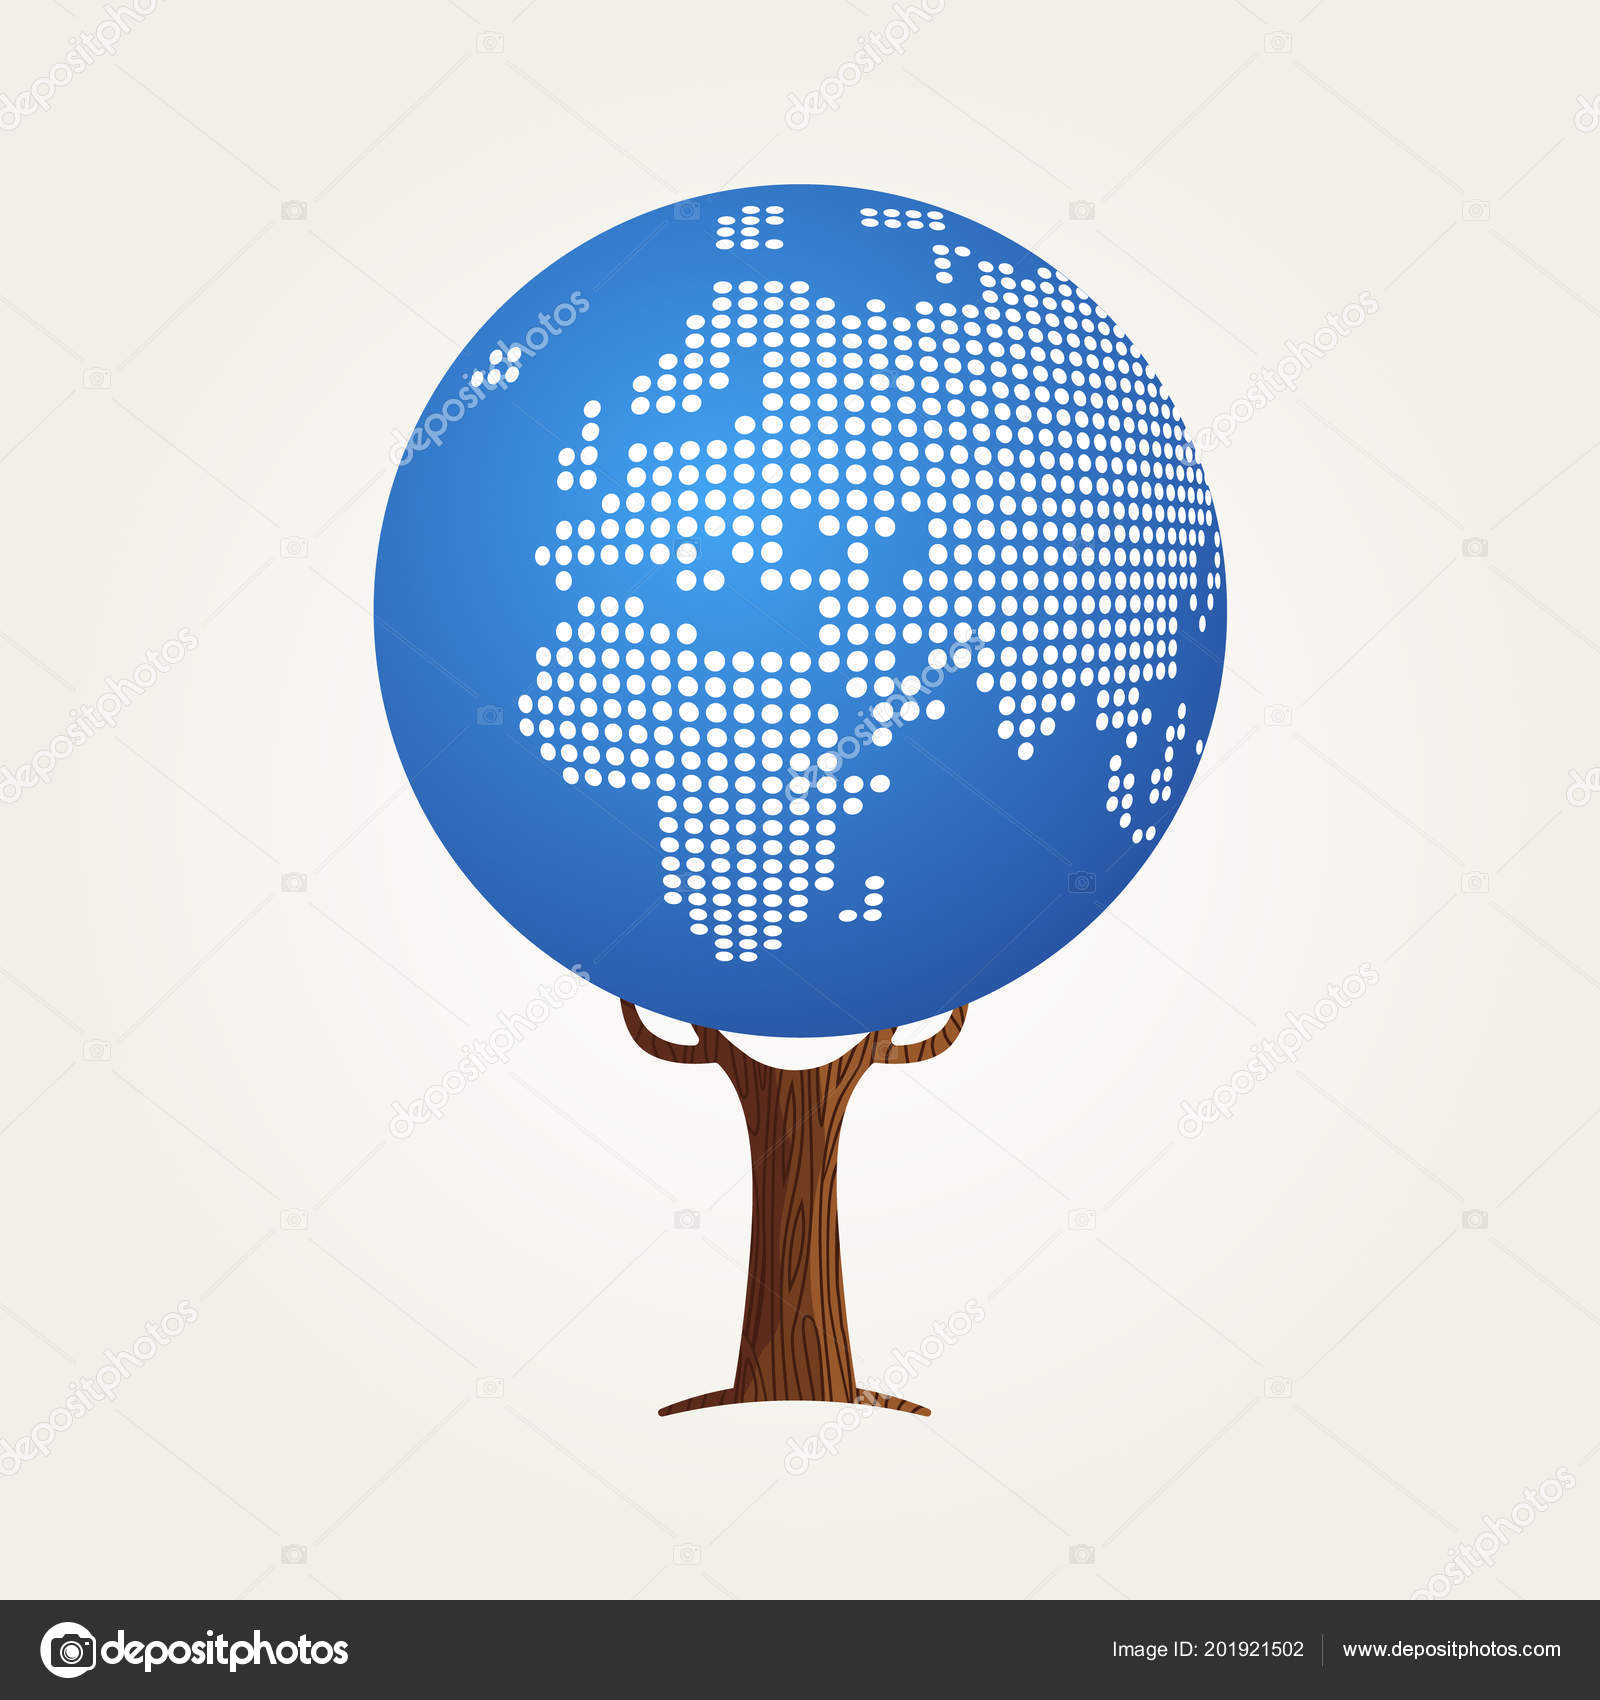 Tree Made Europe Africa World Map Concept Illustration Global ...